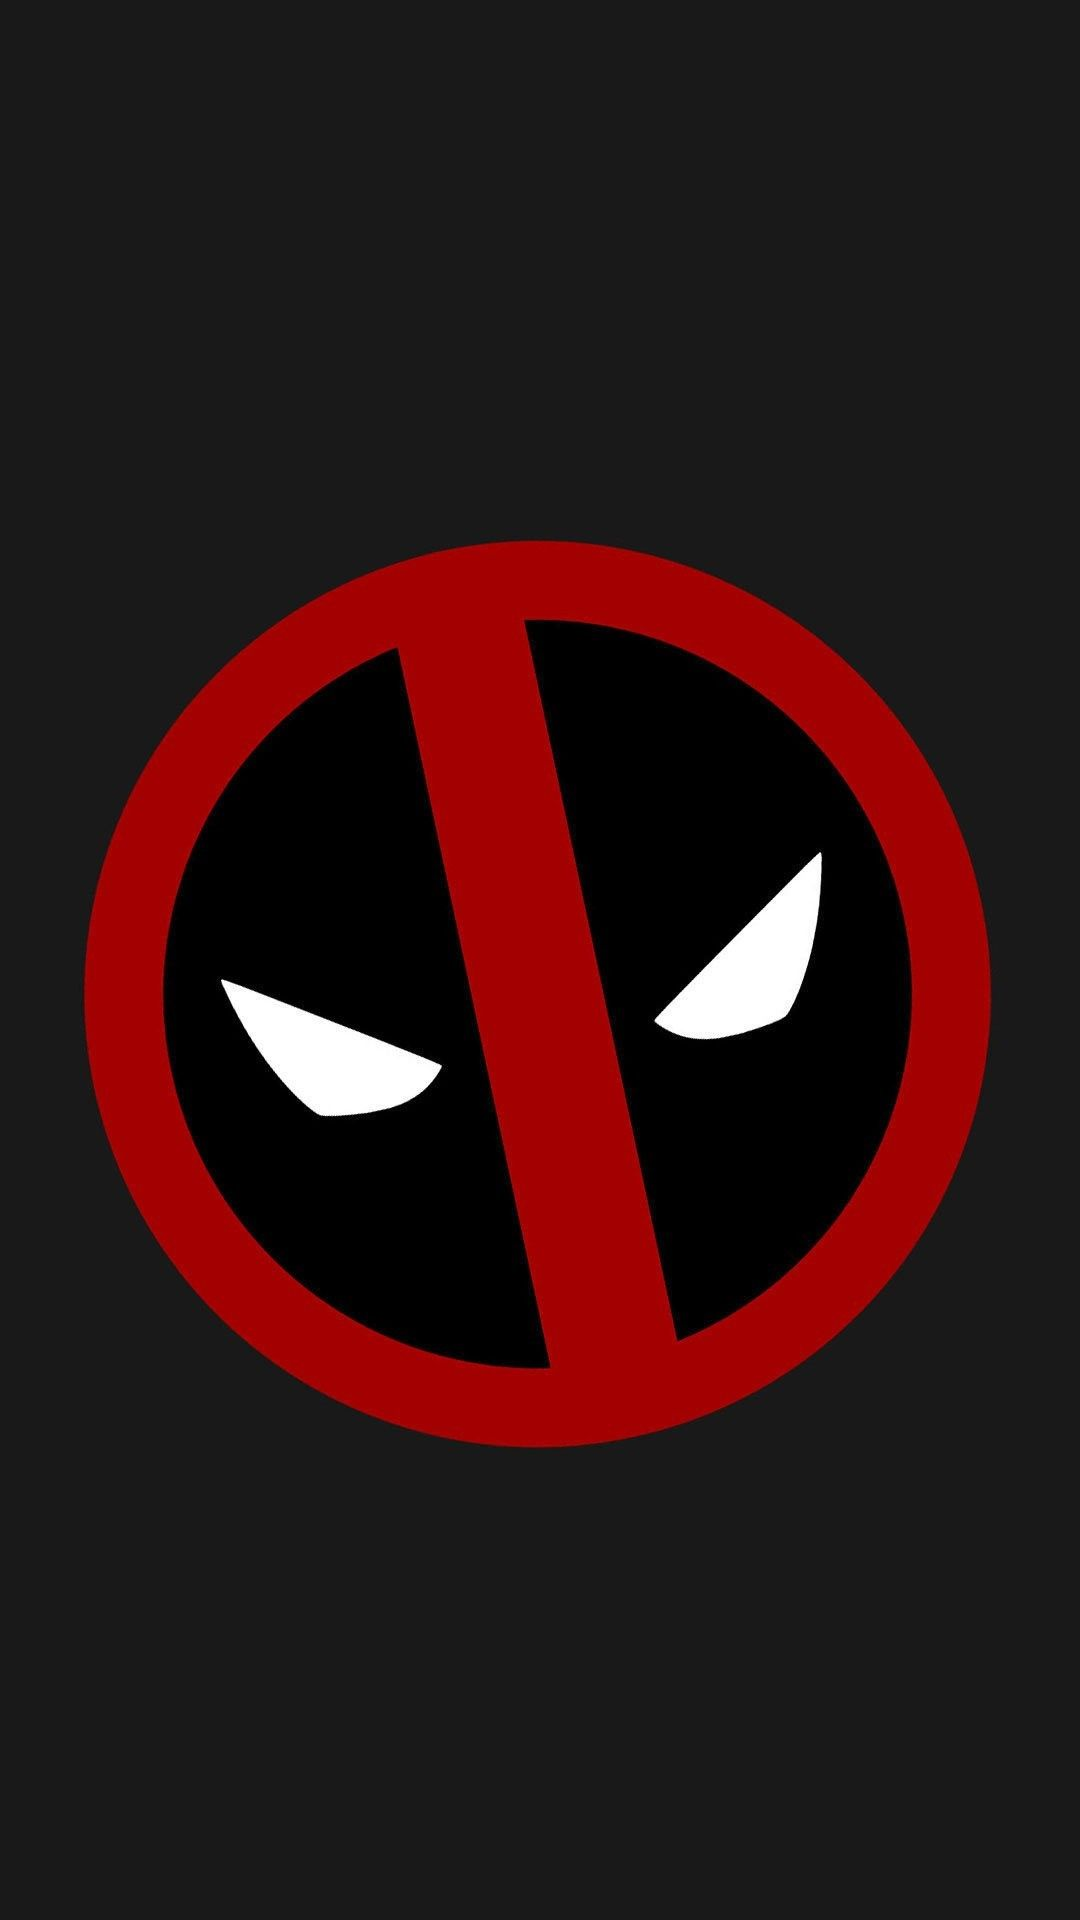 1080x1920 Deadpool iPhone Wallpaper | iPhone Wallpaper